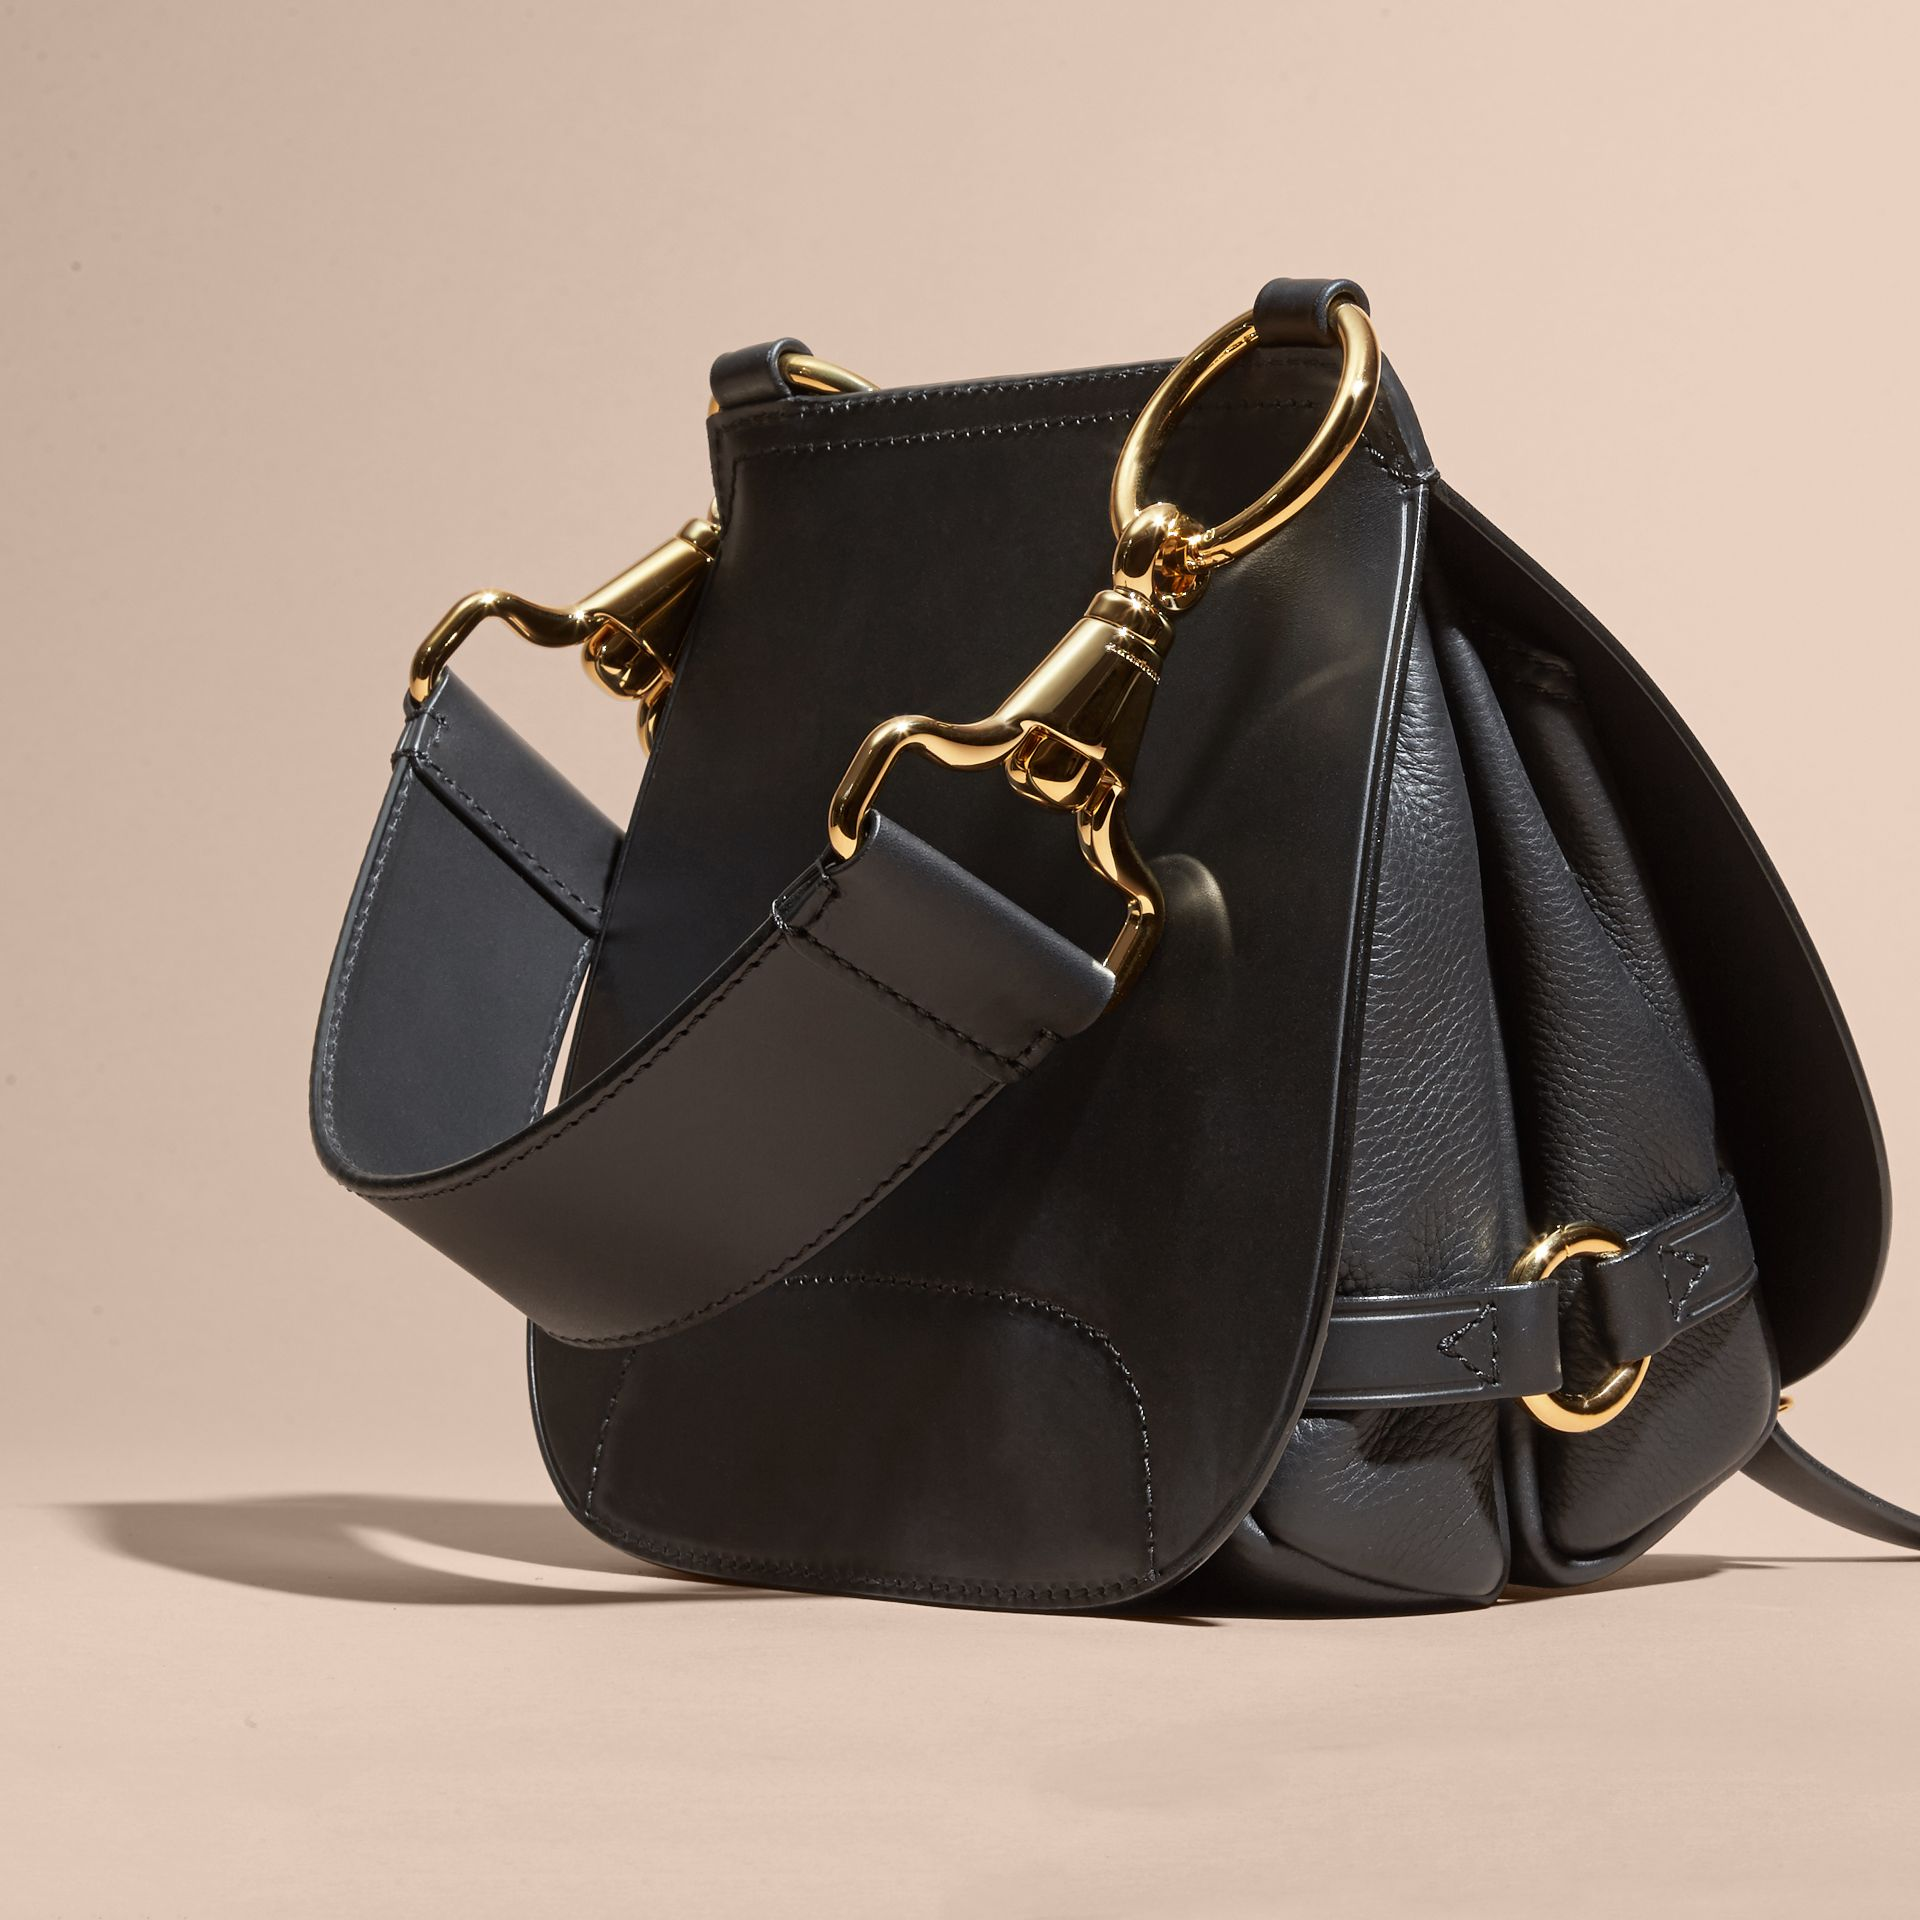 Noir Sac The Bridle en cuir - photo de la galerie 4